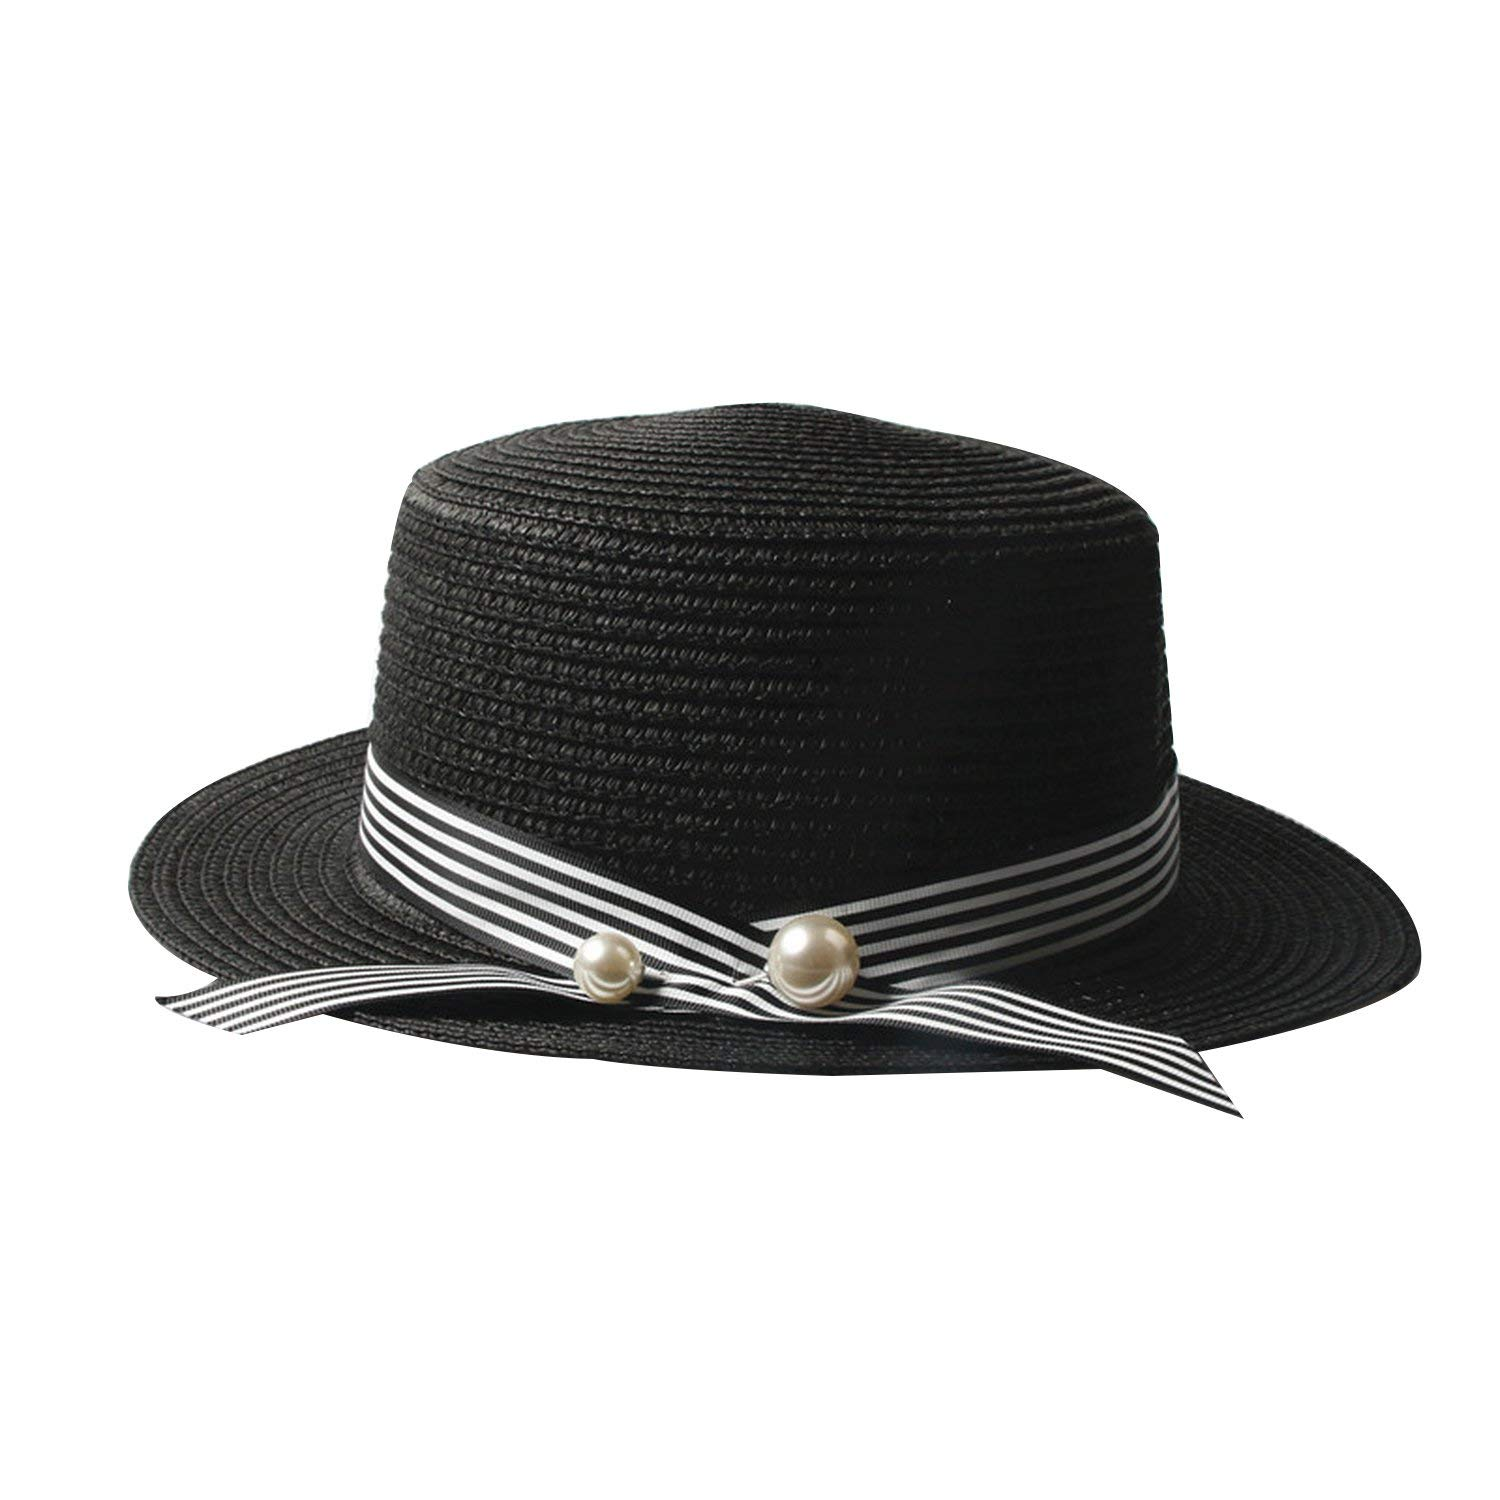 9090874ce5d Women Ribbon Round Flat Top Straw Beach Hat Panama Hat Summer Hats Straw Hat